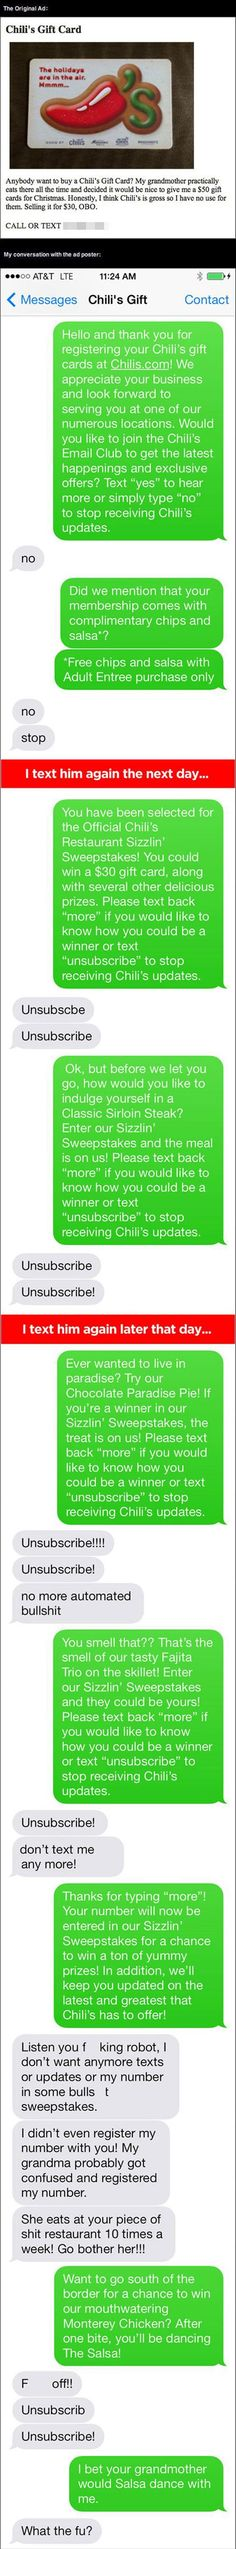 Oh god, prank texting is the bomb... oh, to be young again and sorry for curse words